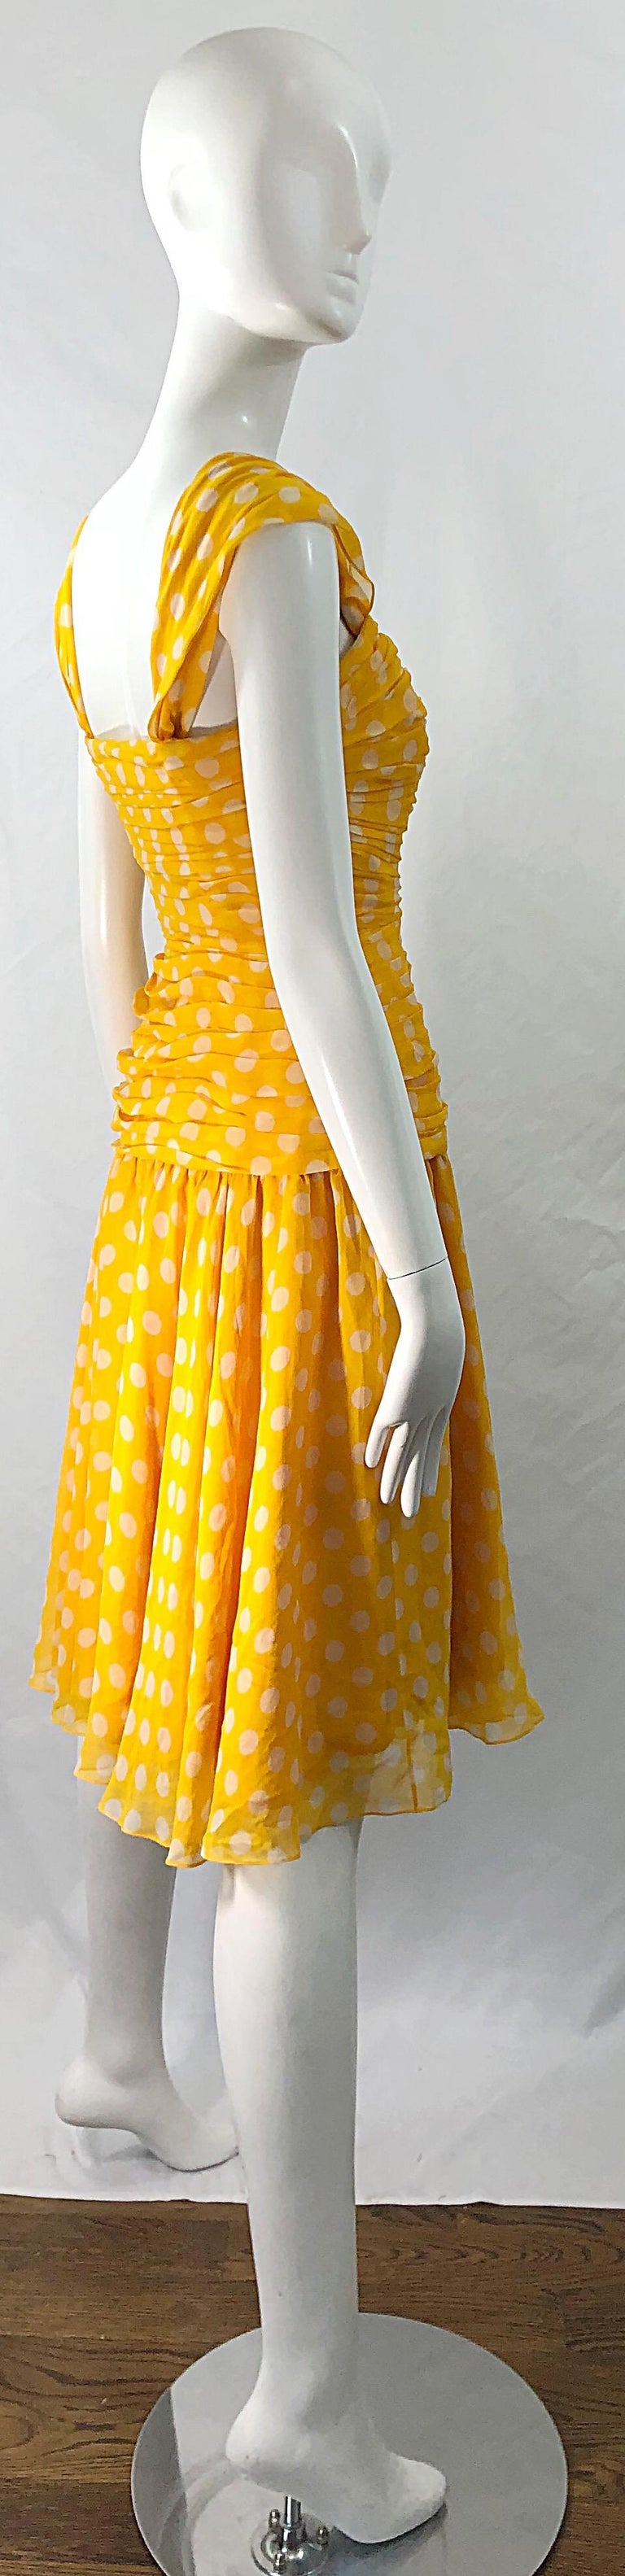 Adele Simpson 1980s Size 4 Yellow White Silk Chiffon Polka Dot Vintage 80s Dress In Excellent Condition For Sale In Chicago, IL